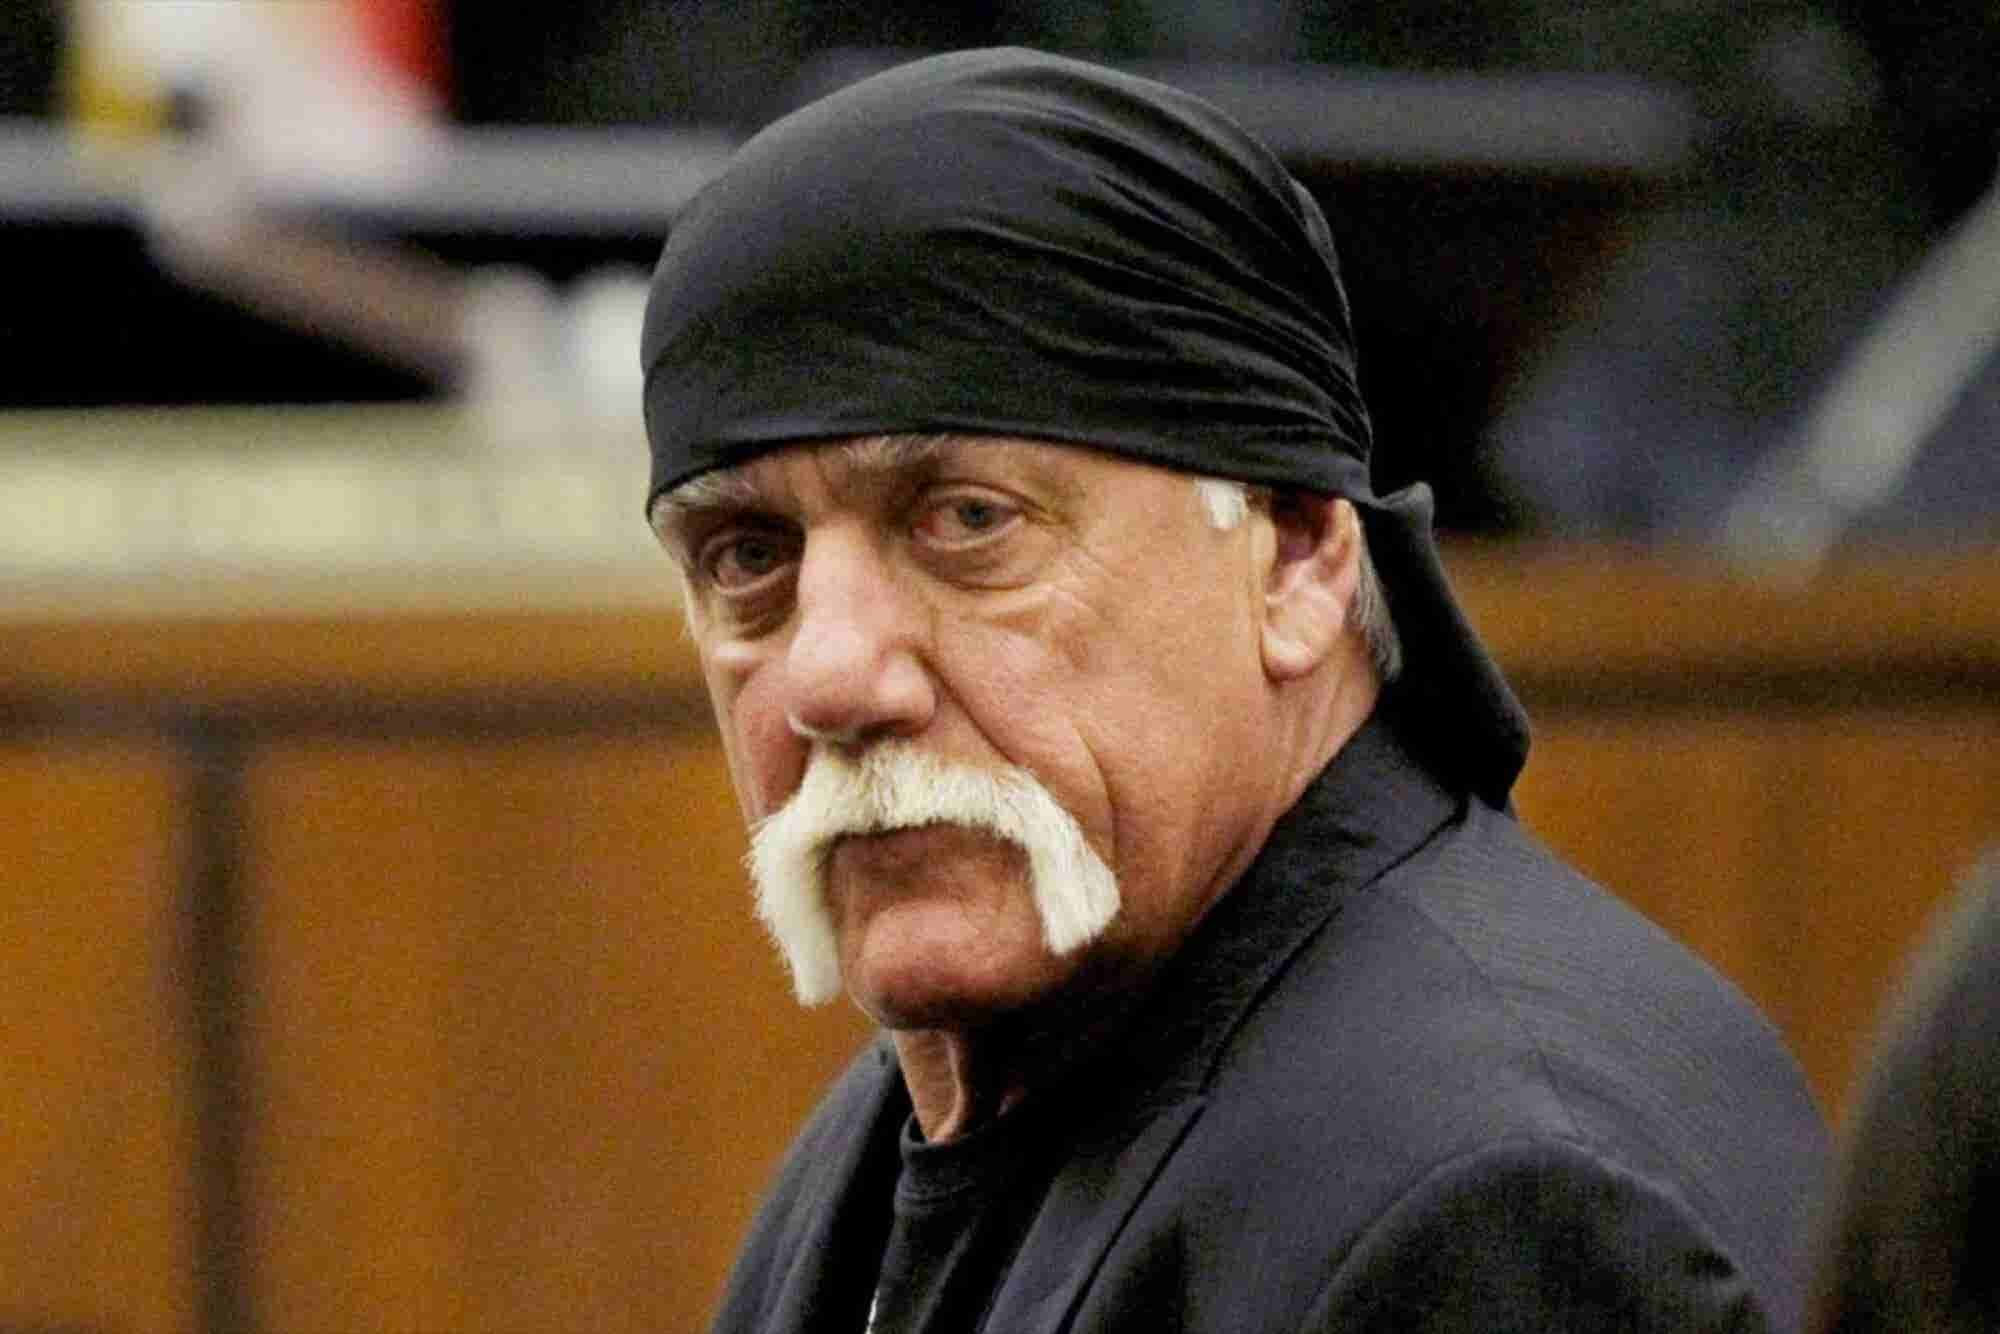 Gawker Settles With Ex-Pro Wrestler Hulk Hogan for $31 Million